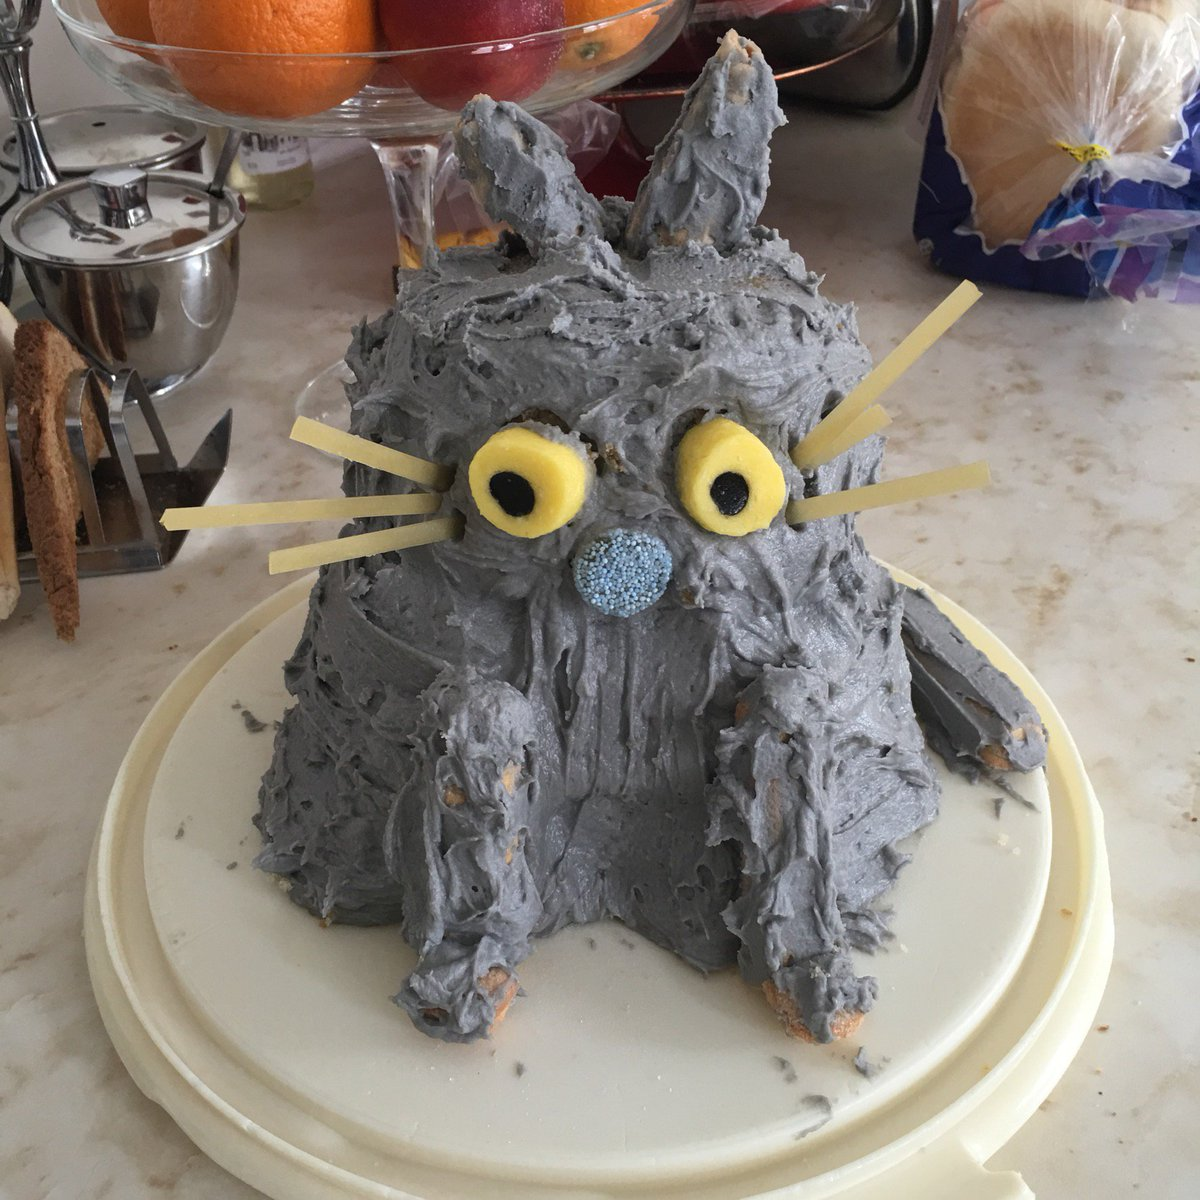 After a crap week, where I was shit, my mate has made me a cat cake to cheer me up. It's gloriously rubbish. https://t.co/2qXQpcSkLf